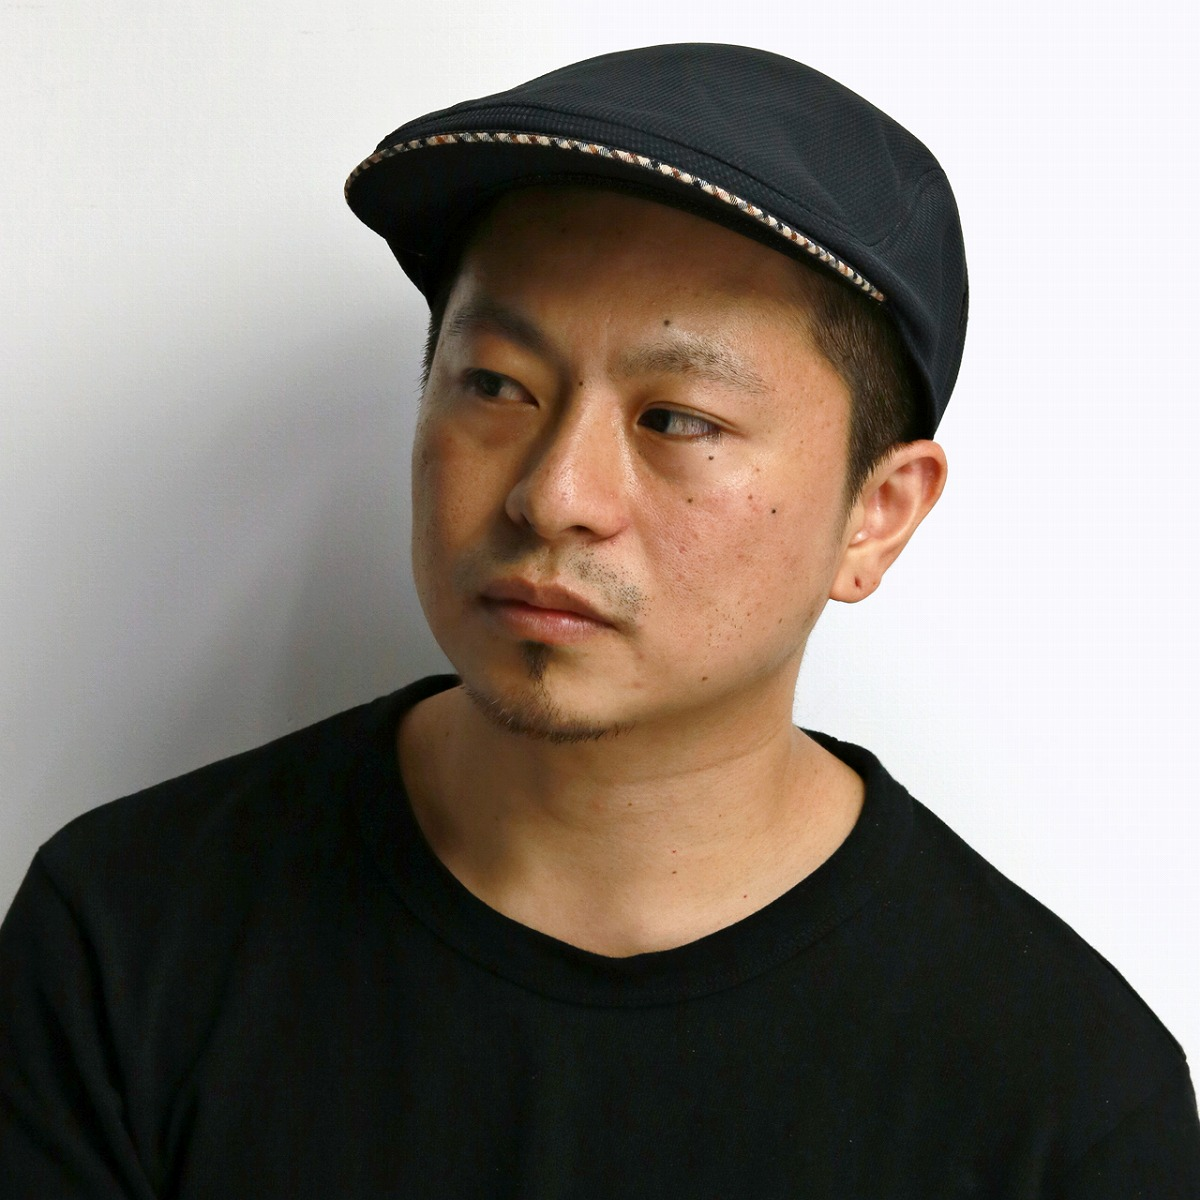 1850d0dd909 It is a gift present hat mail order in brand monotone black black  ivy cap   Father s Day in Daks hunting cap men cool feeling cool max picket DAKS  hunting ...